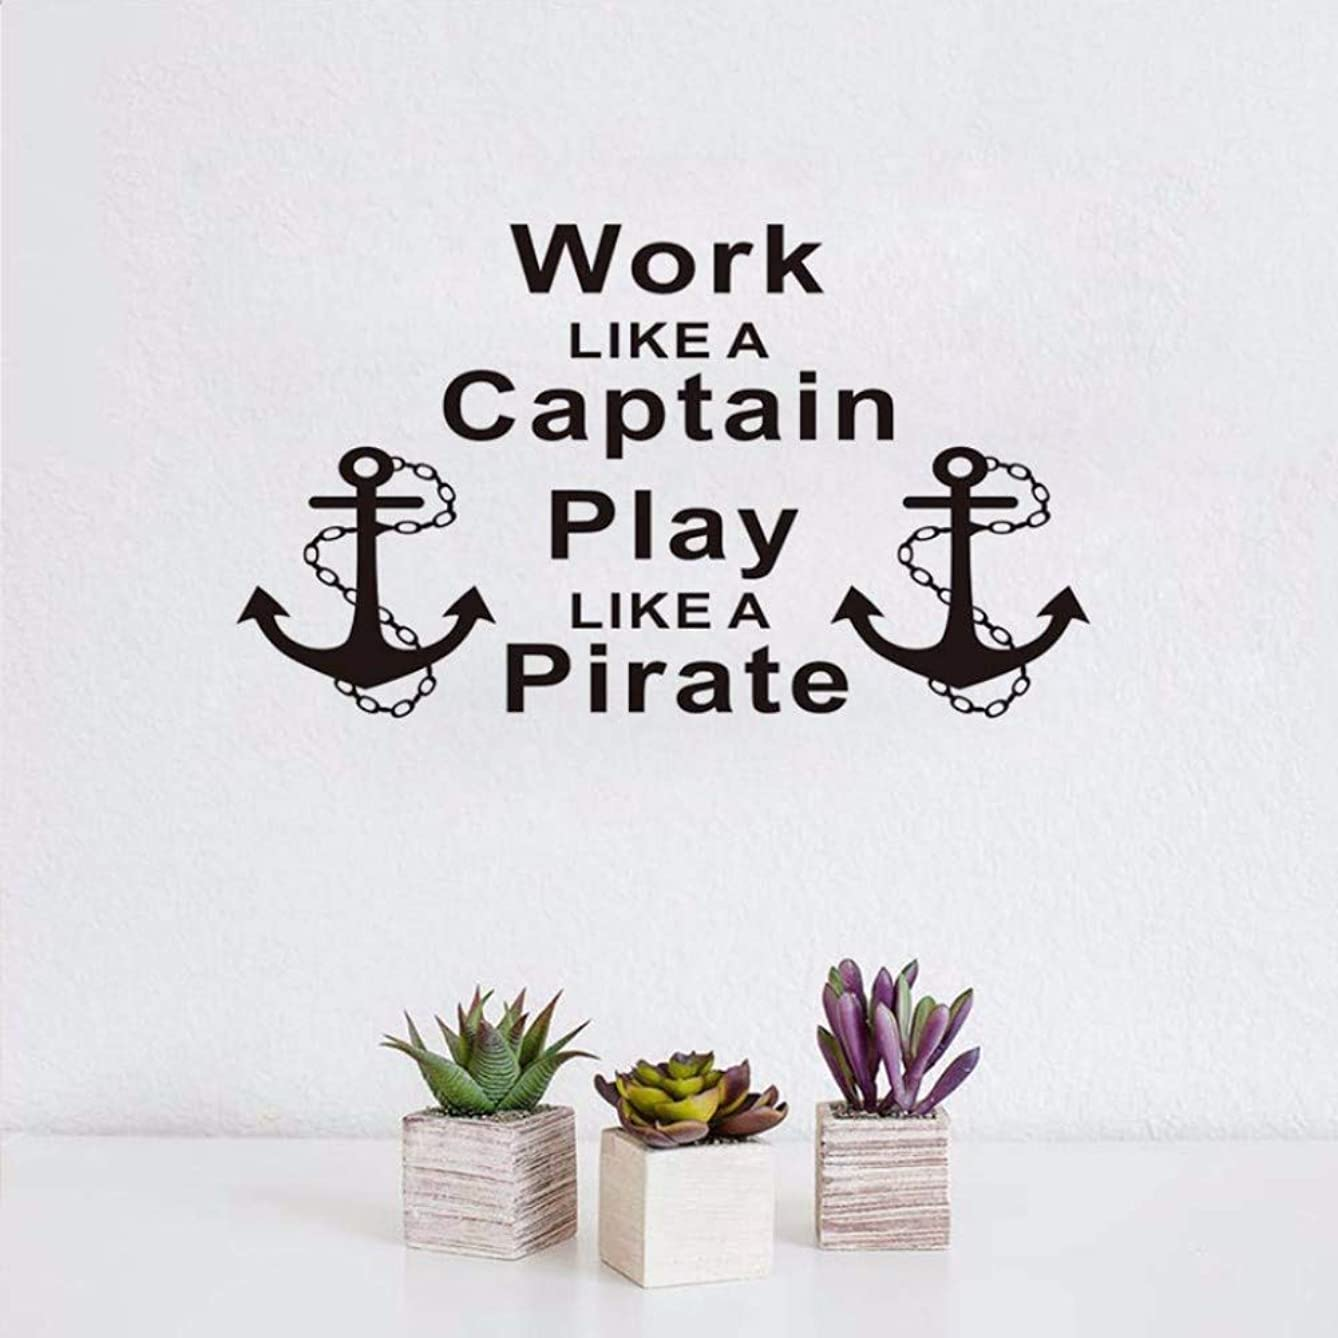 EASTONE Inspiring s Work Like A Captain Play Like A Pirate Wall Stickers Anchors Letters Home Decor Living Room Vinyl Wall Decals 100X58CM